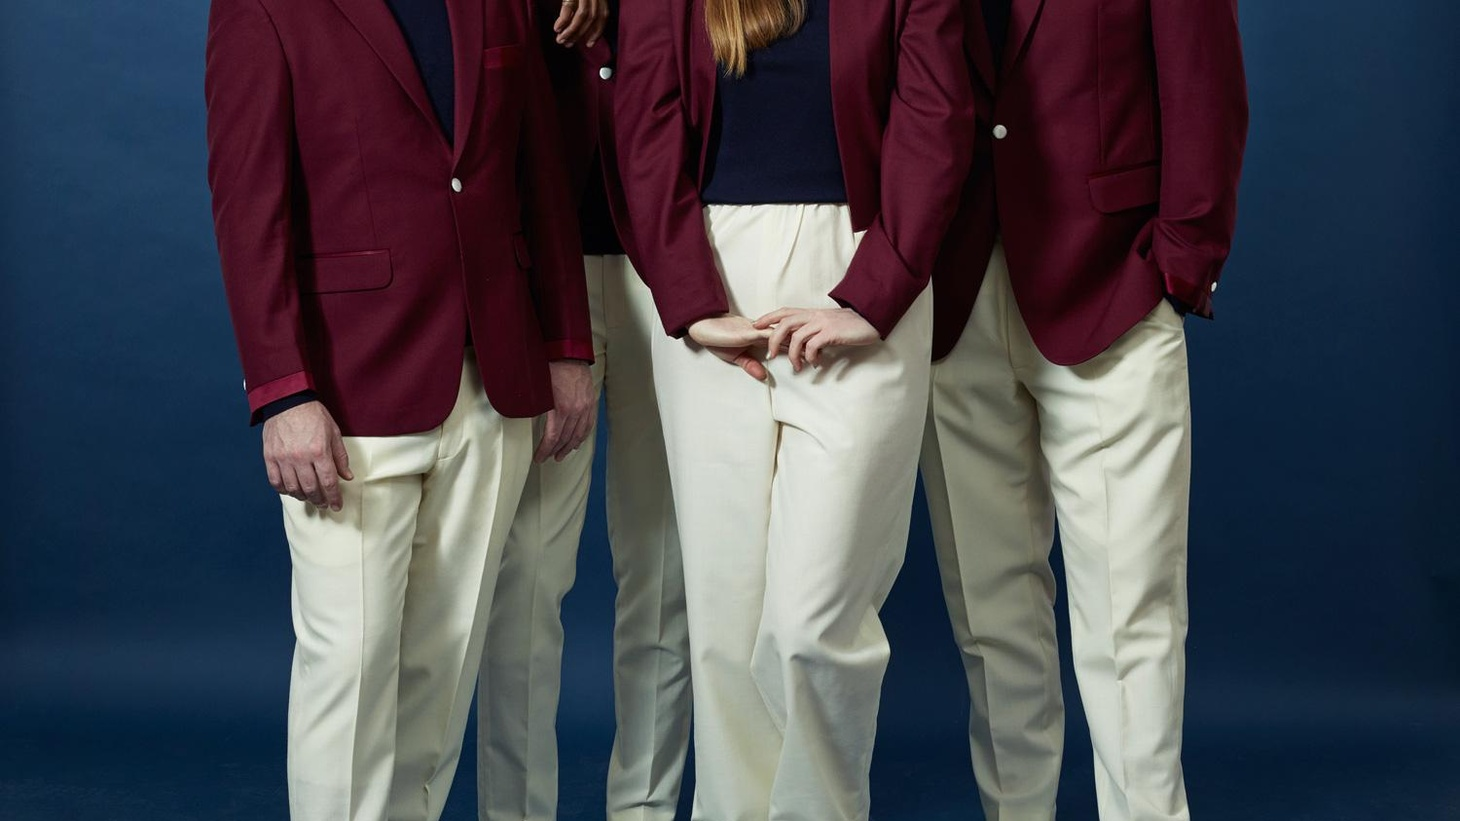 While touring behind Metronomy's new album, frontman Joseph Mount started writing the songs that would become Love Letters.